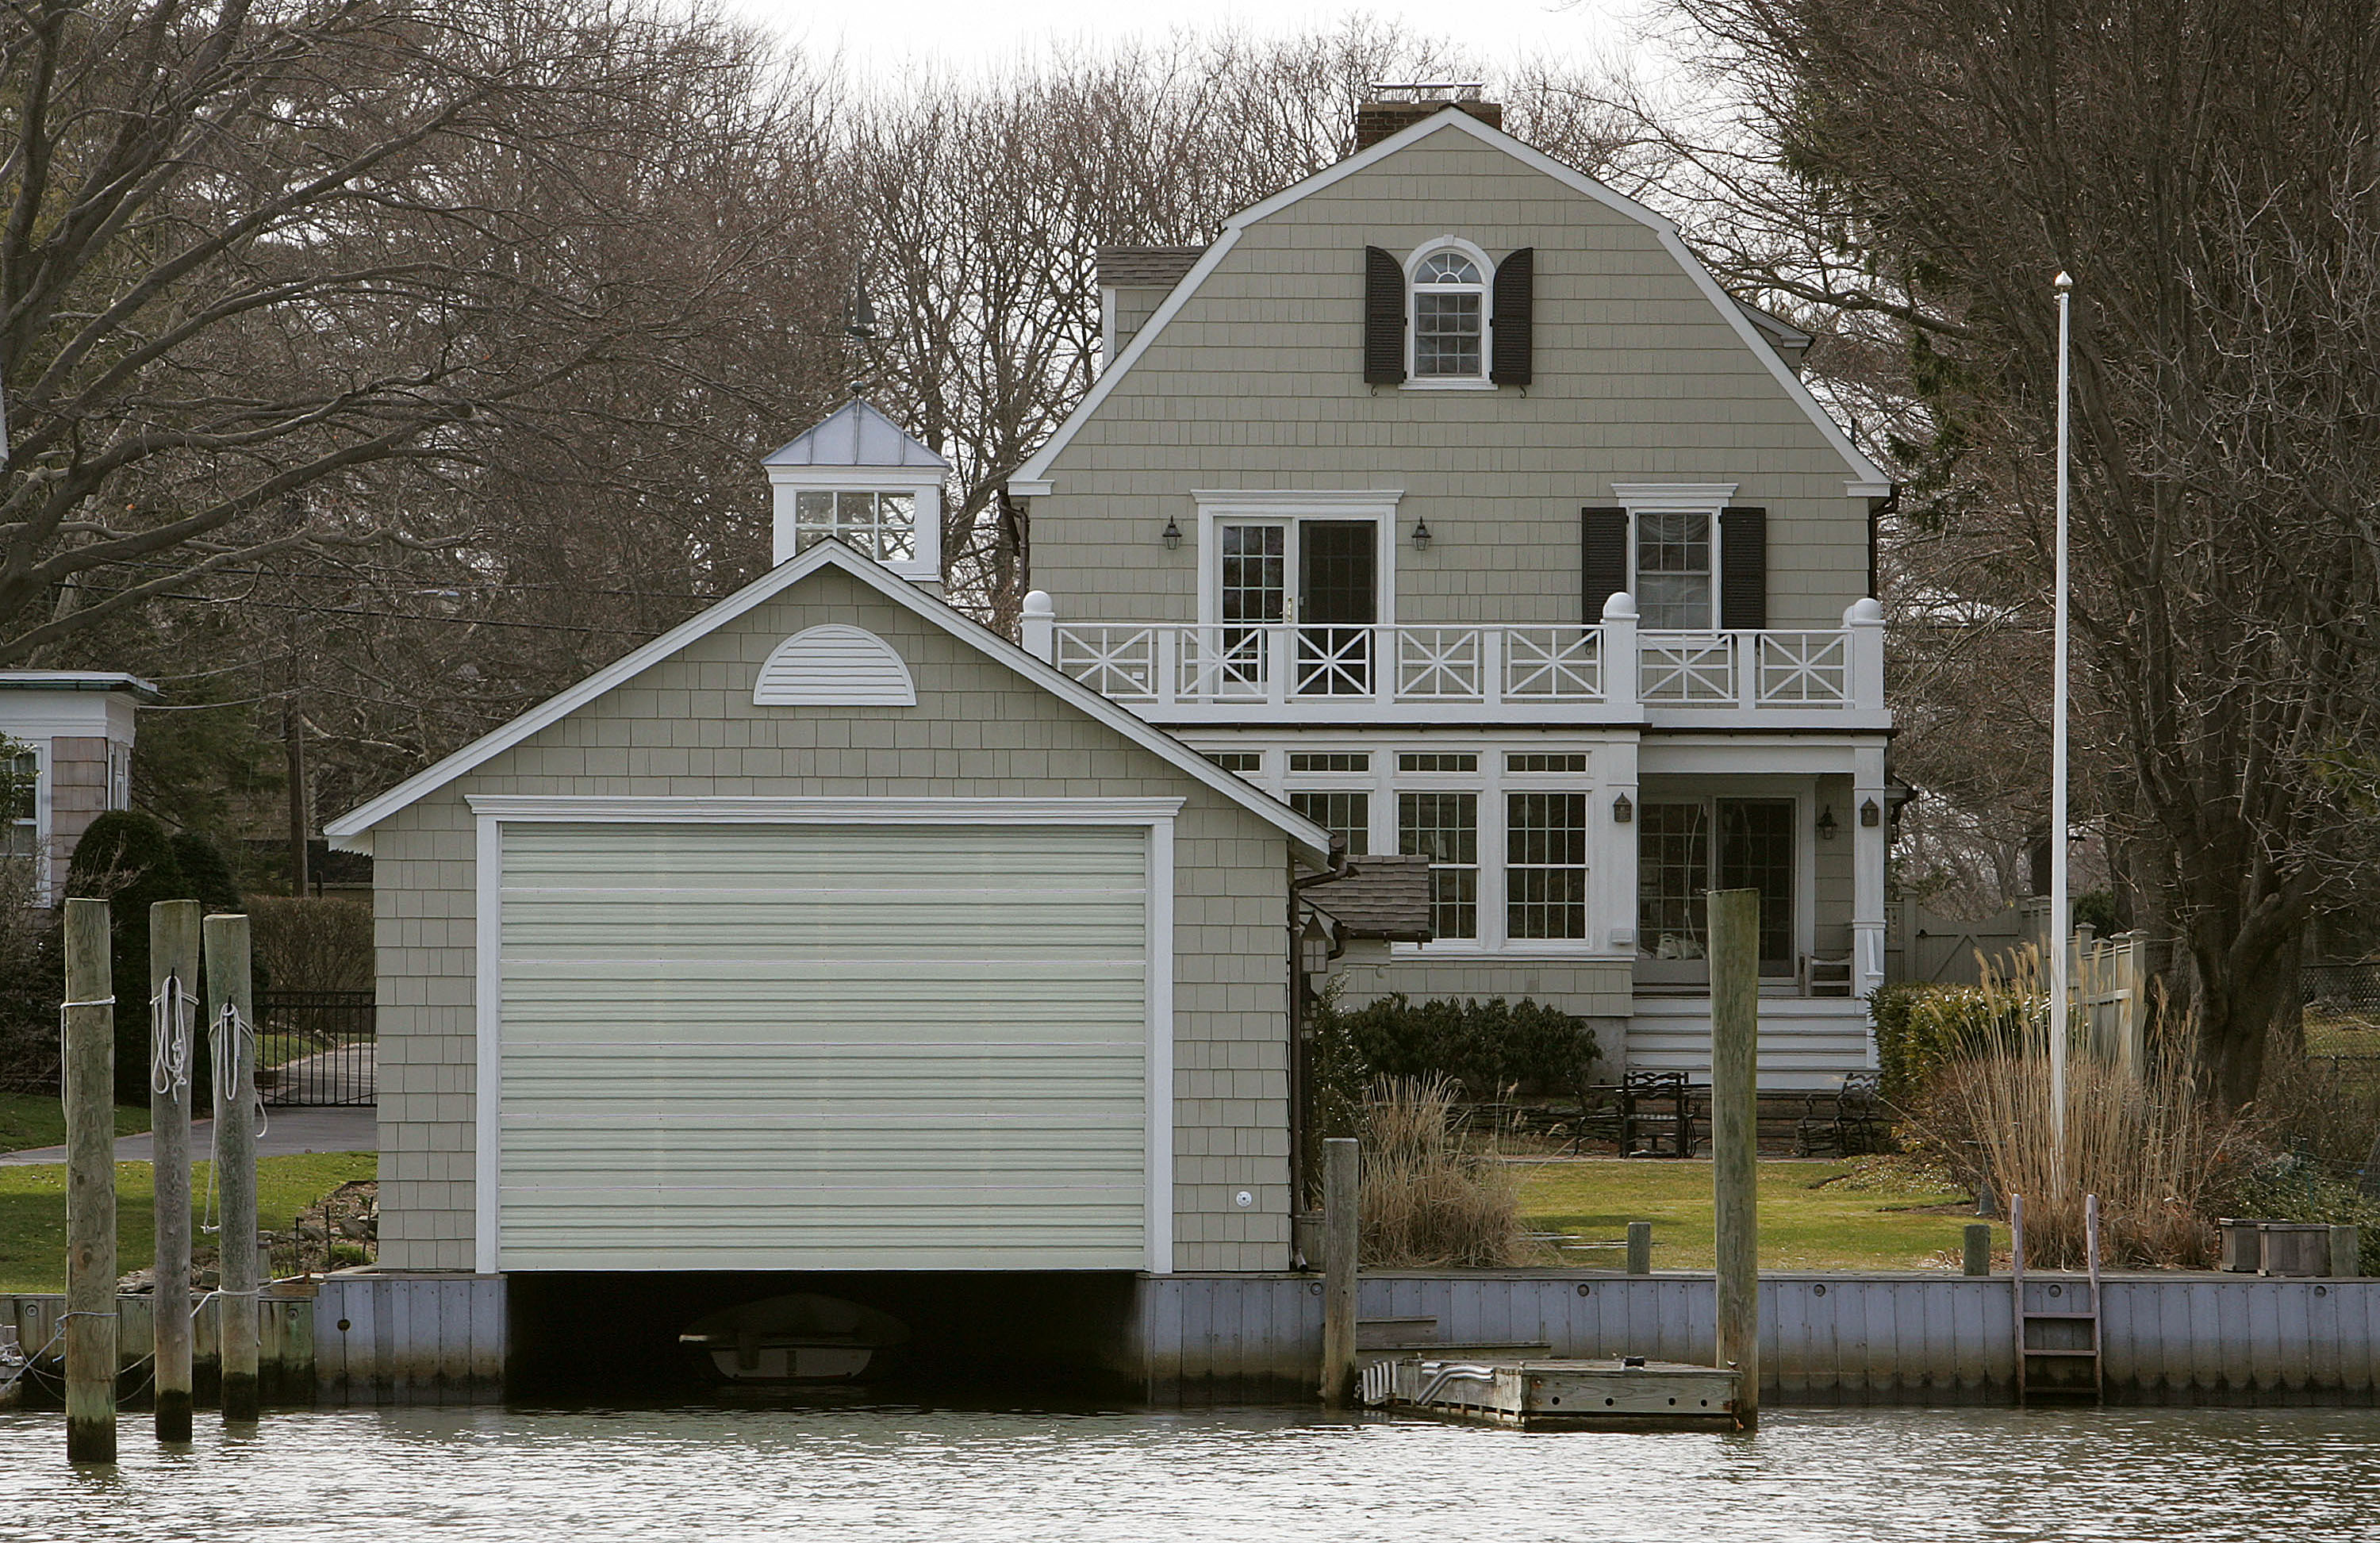 The True Crime Story Behind The Lutz Family And The Amityville